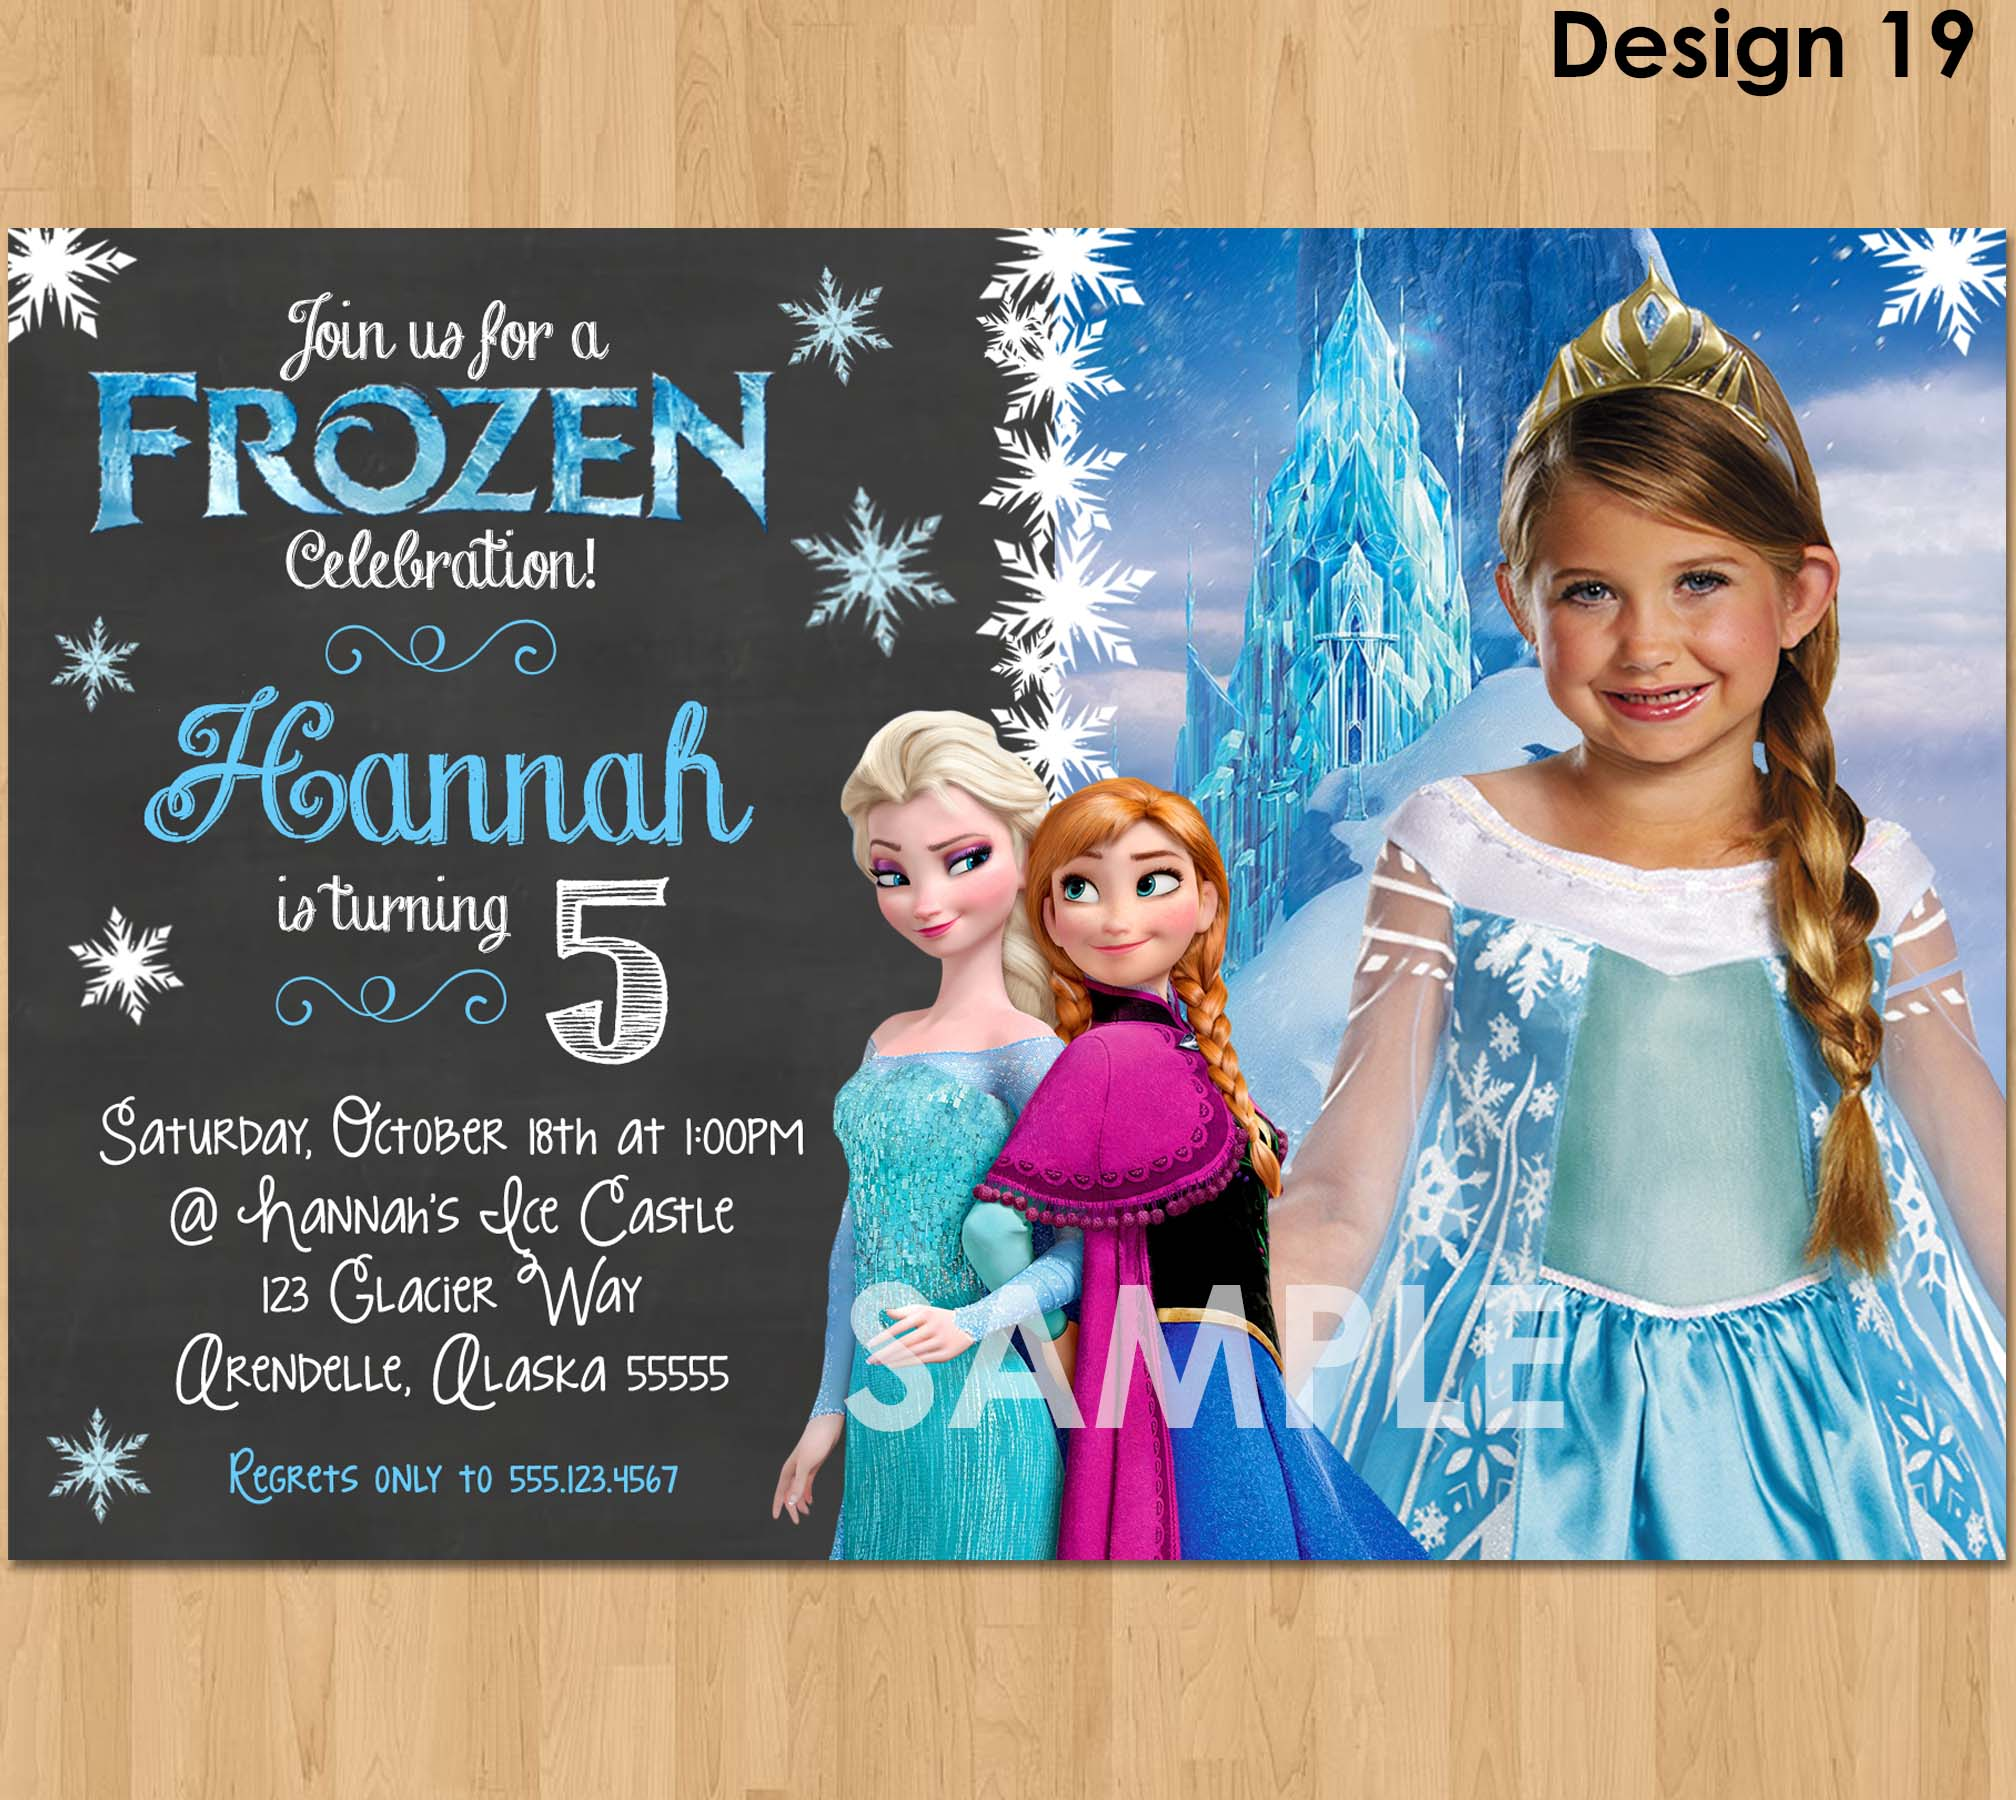 photograph about Printable Frozen Birthday Invitations titled Frozen Chalkboard Invitation - Frozen Image Invitation - Disney Frozen Birthday Invitation Get together Invite Strategies Printable Elsa Anna Electronic